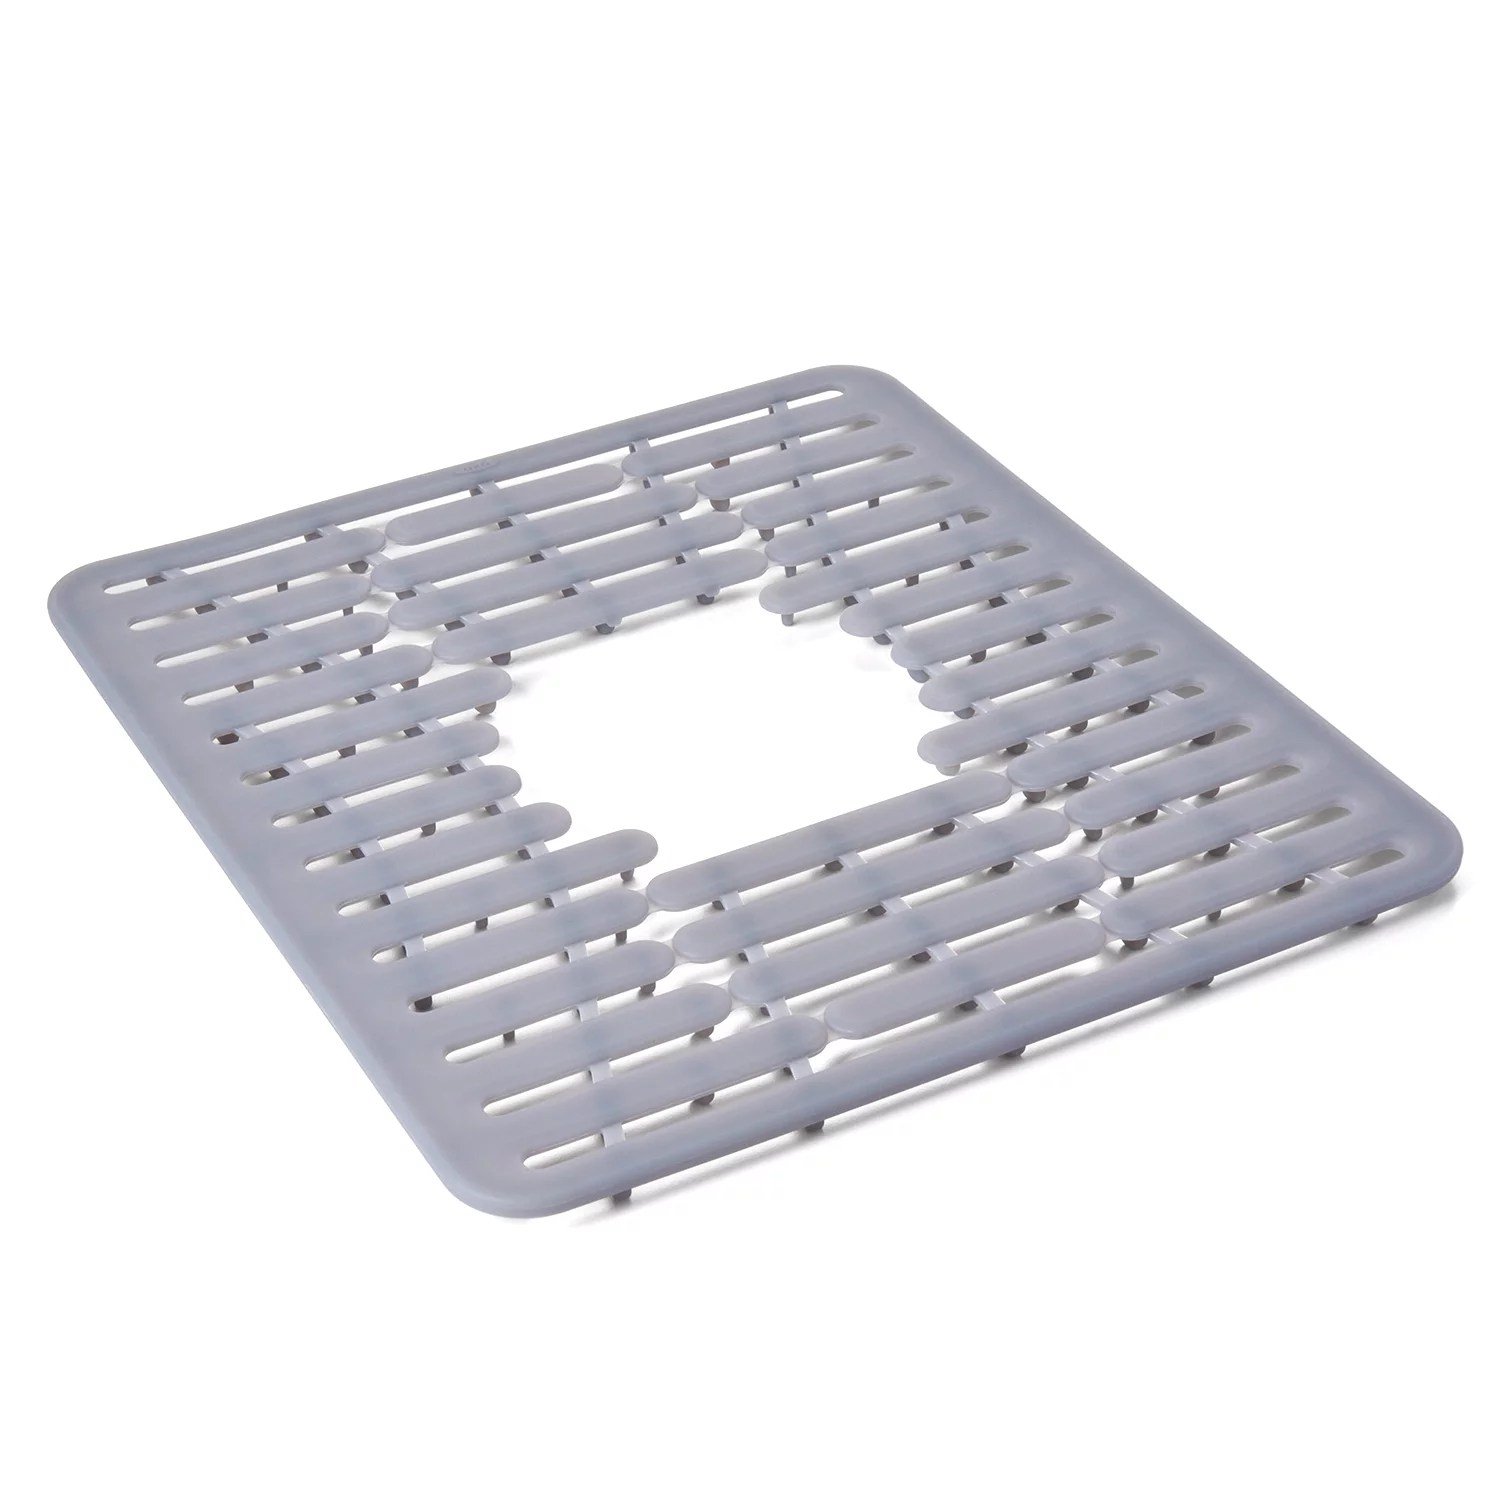 oxo good grips silicone sink mat